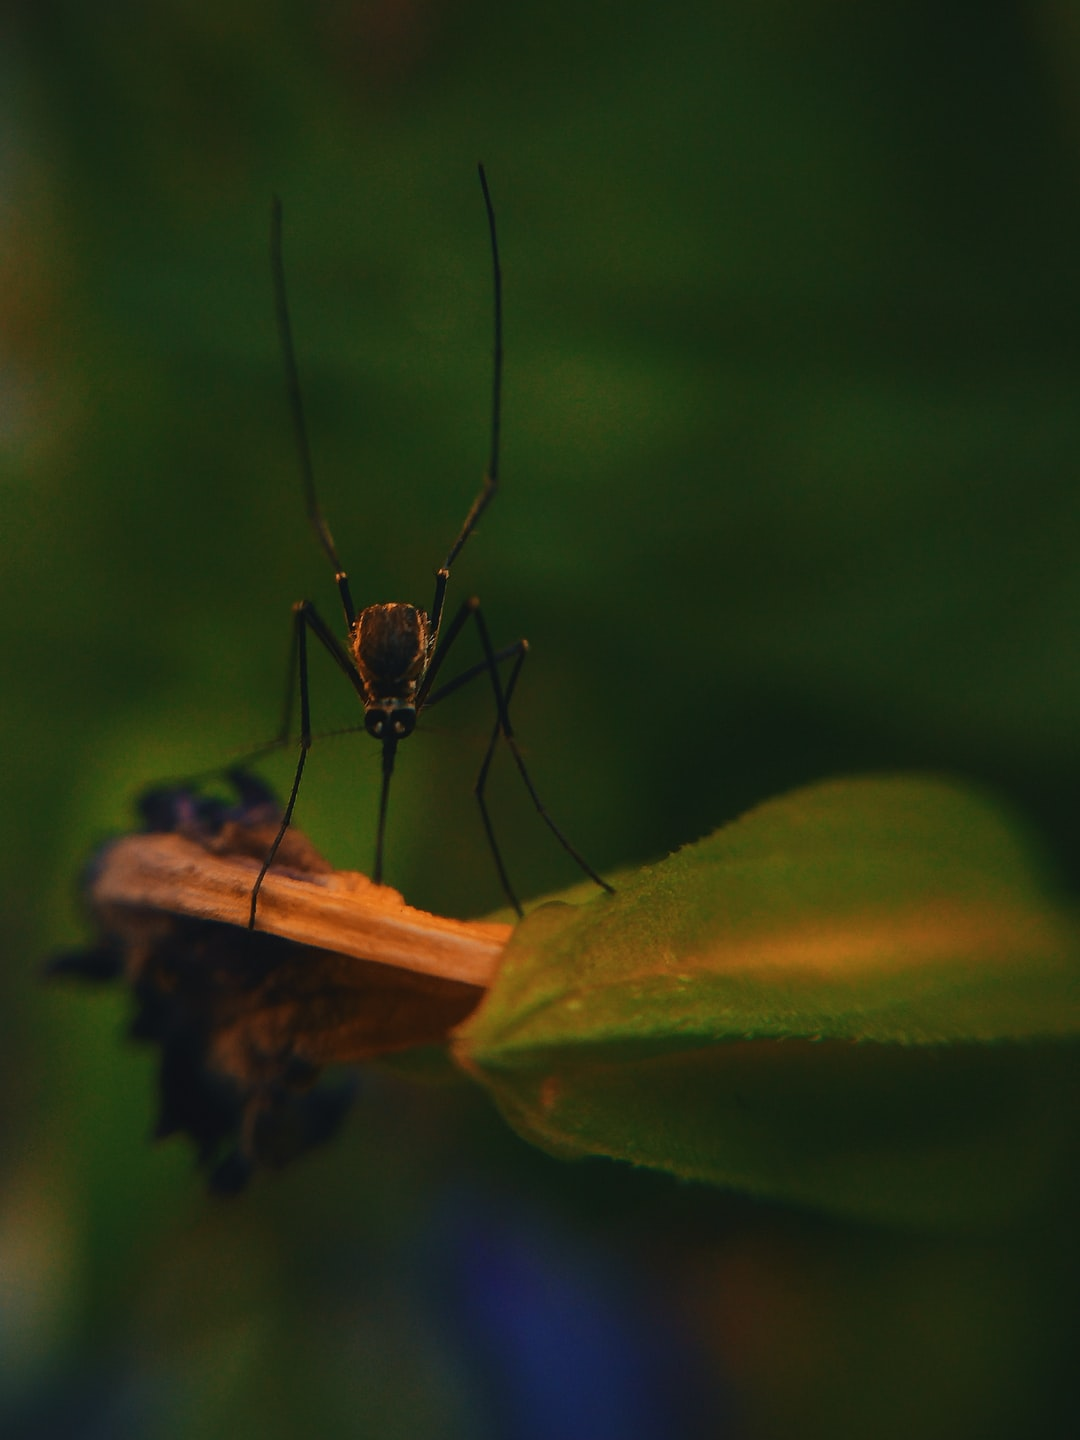 The Mighty Mosquito